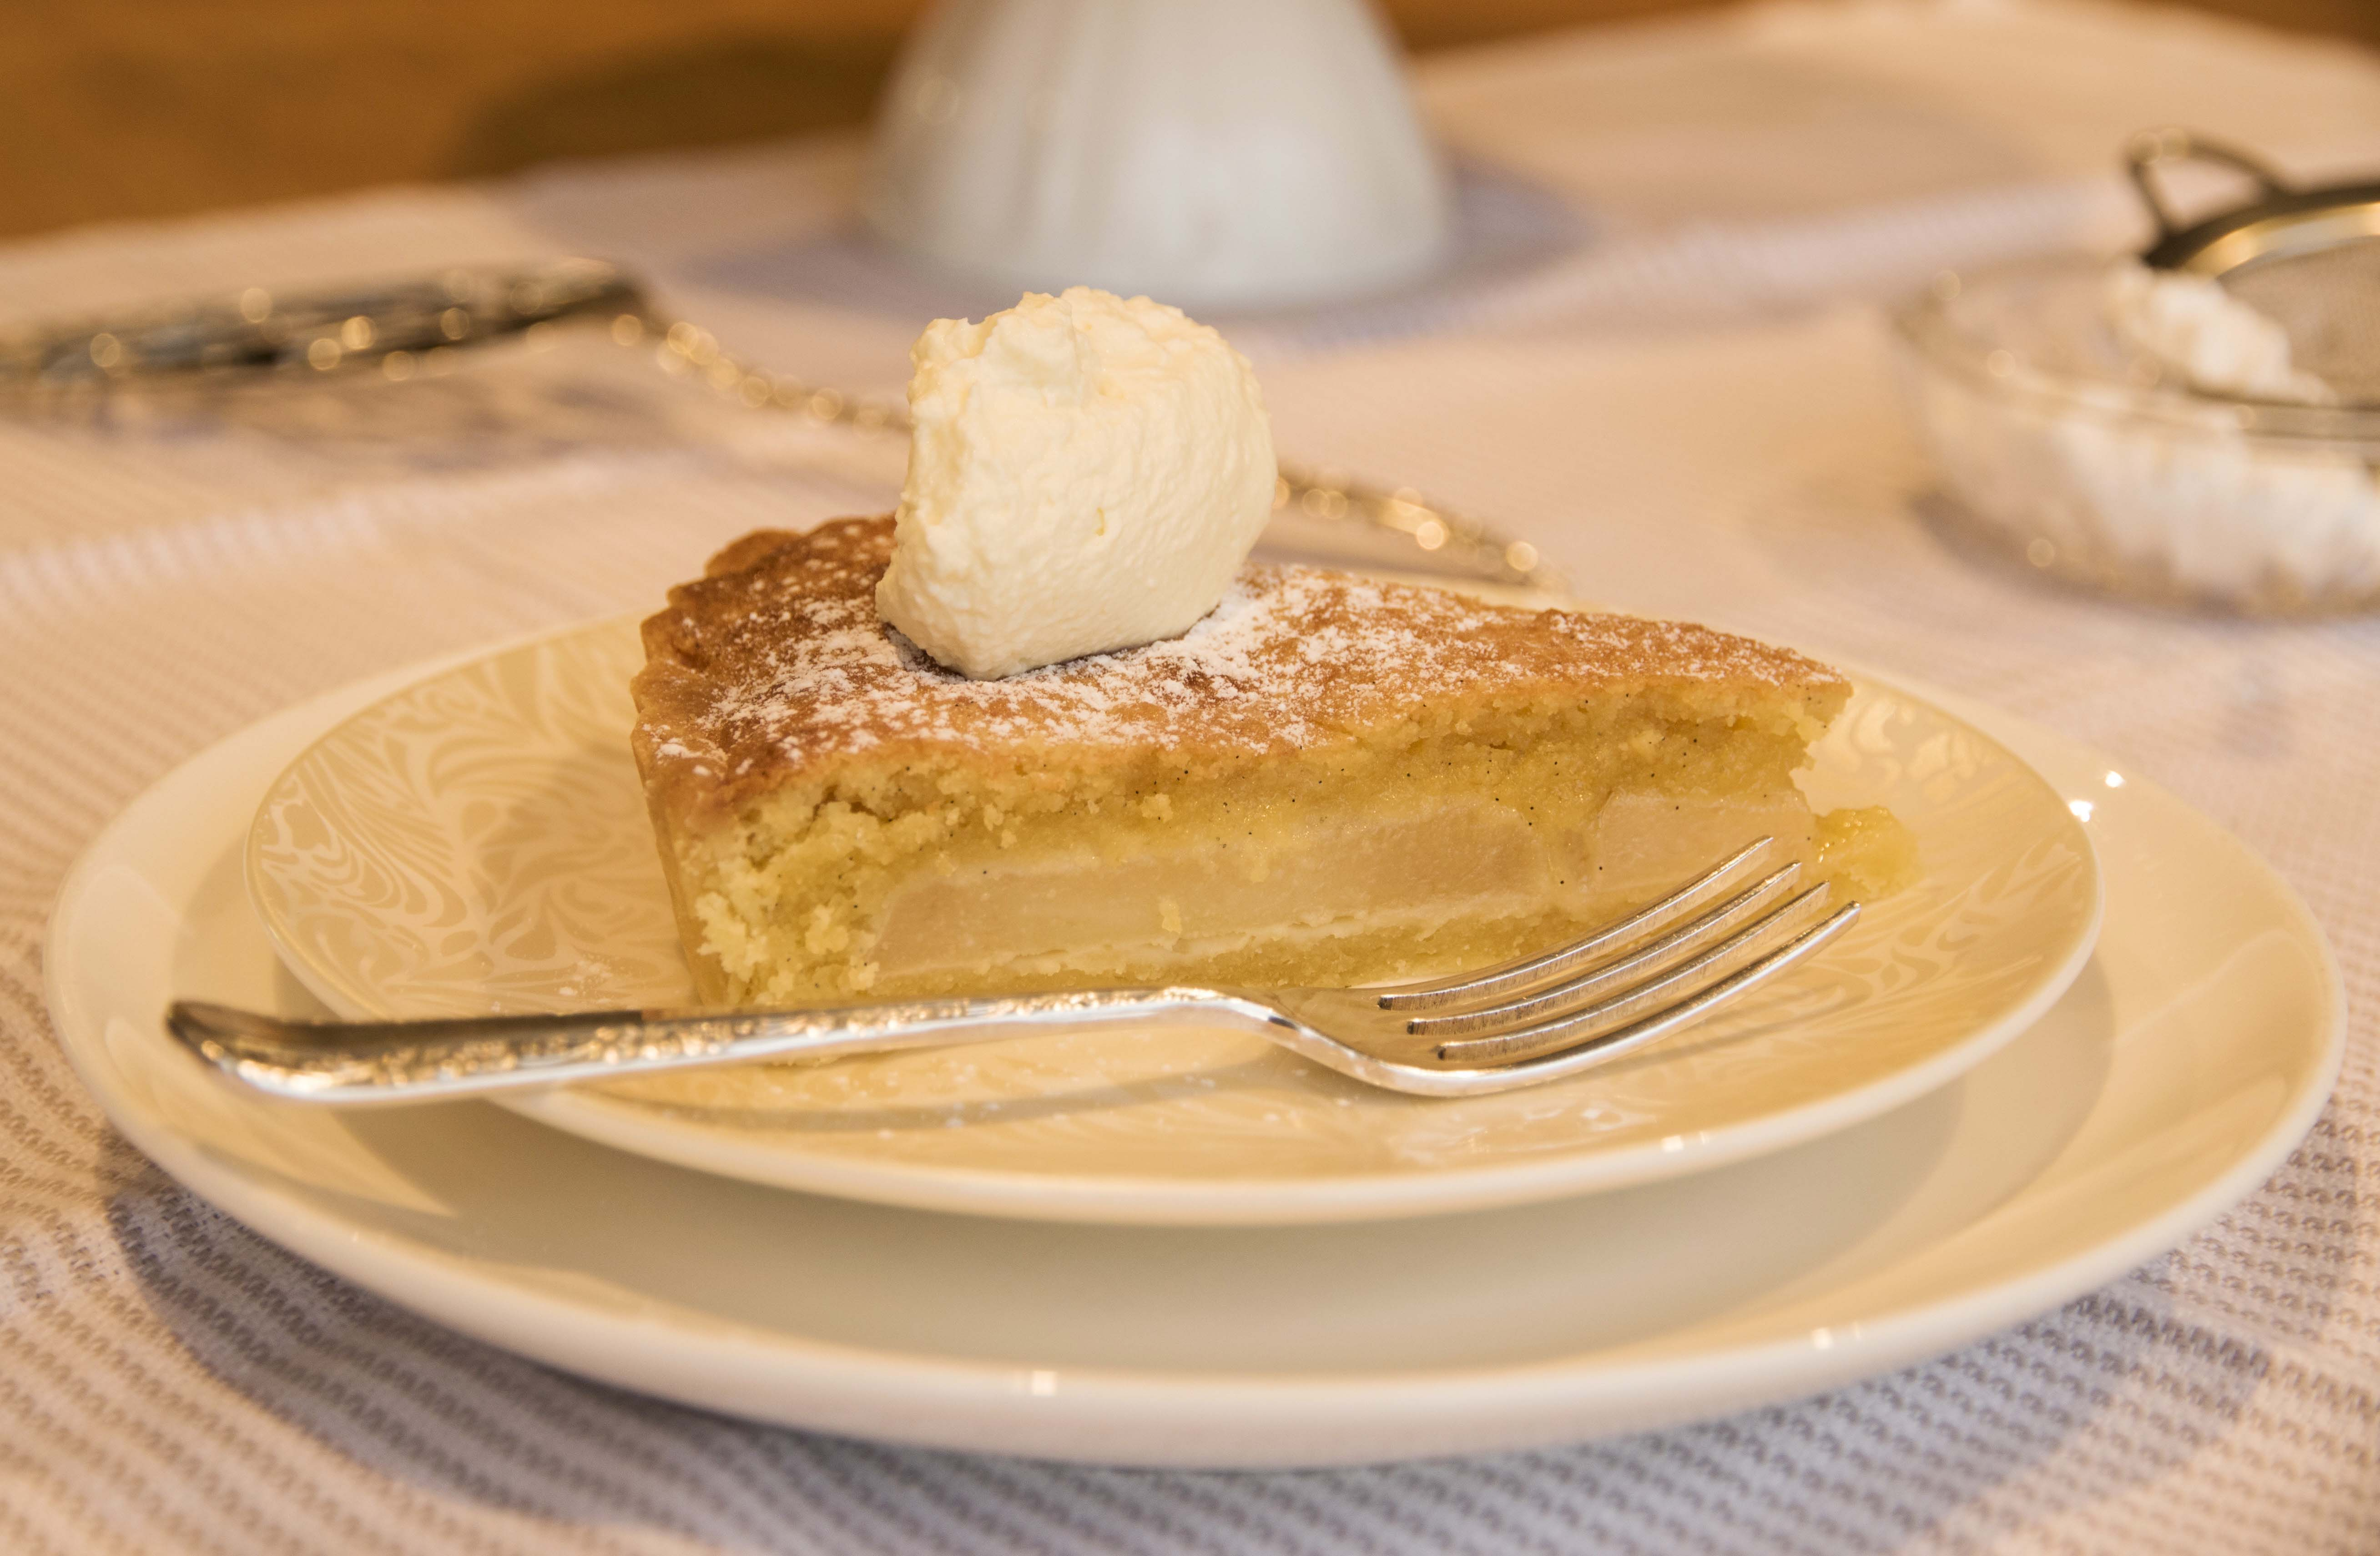 Discussion on this topic: Quince And Frangipane Tart Recipe, quince-and-frangipane-tart-recipe/